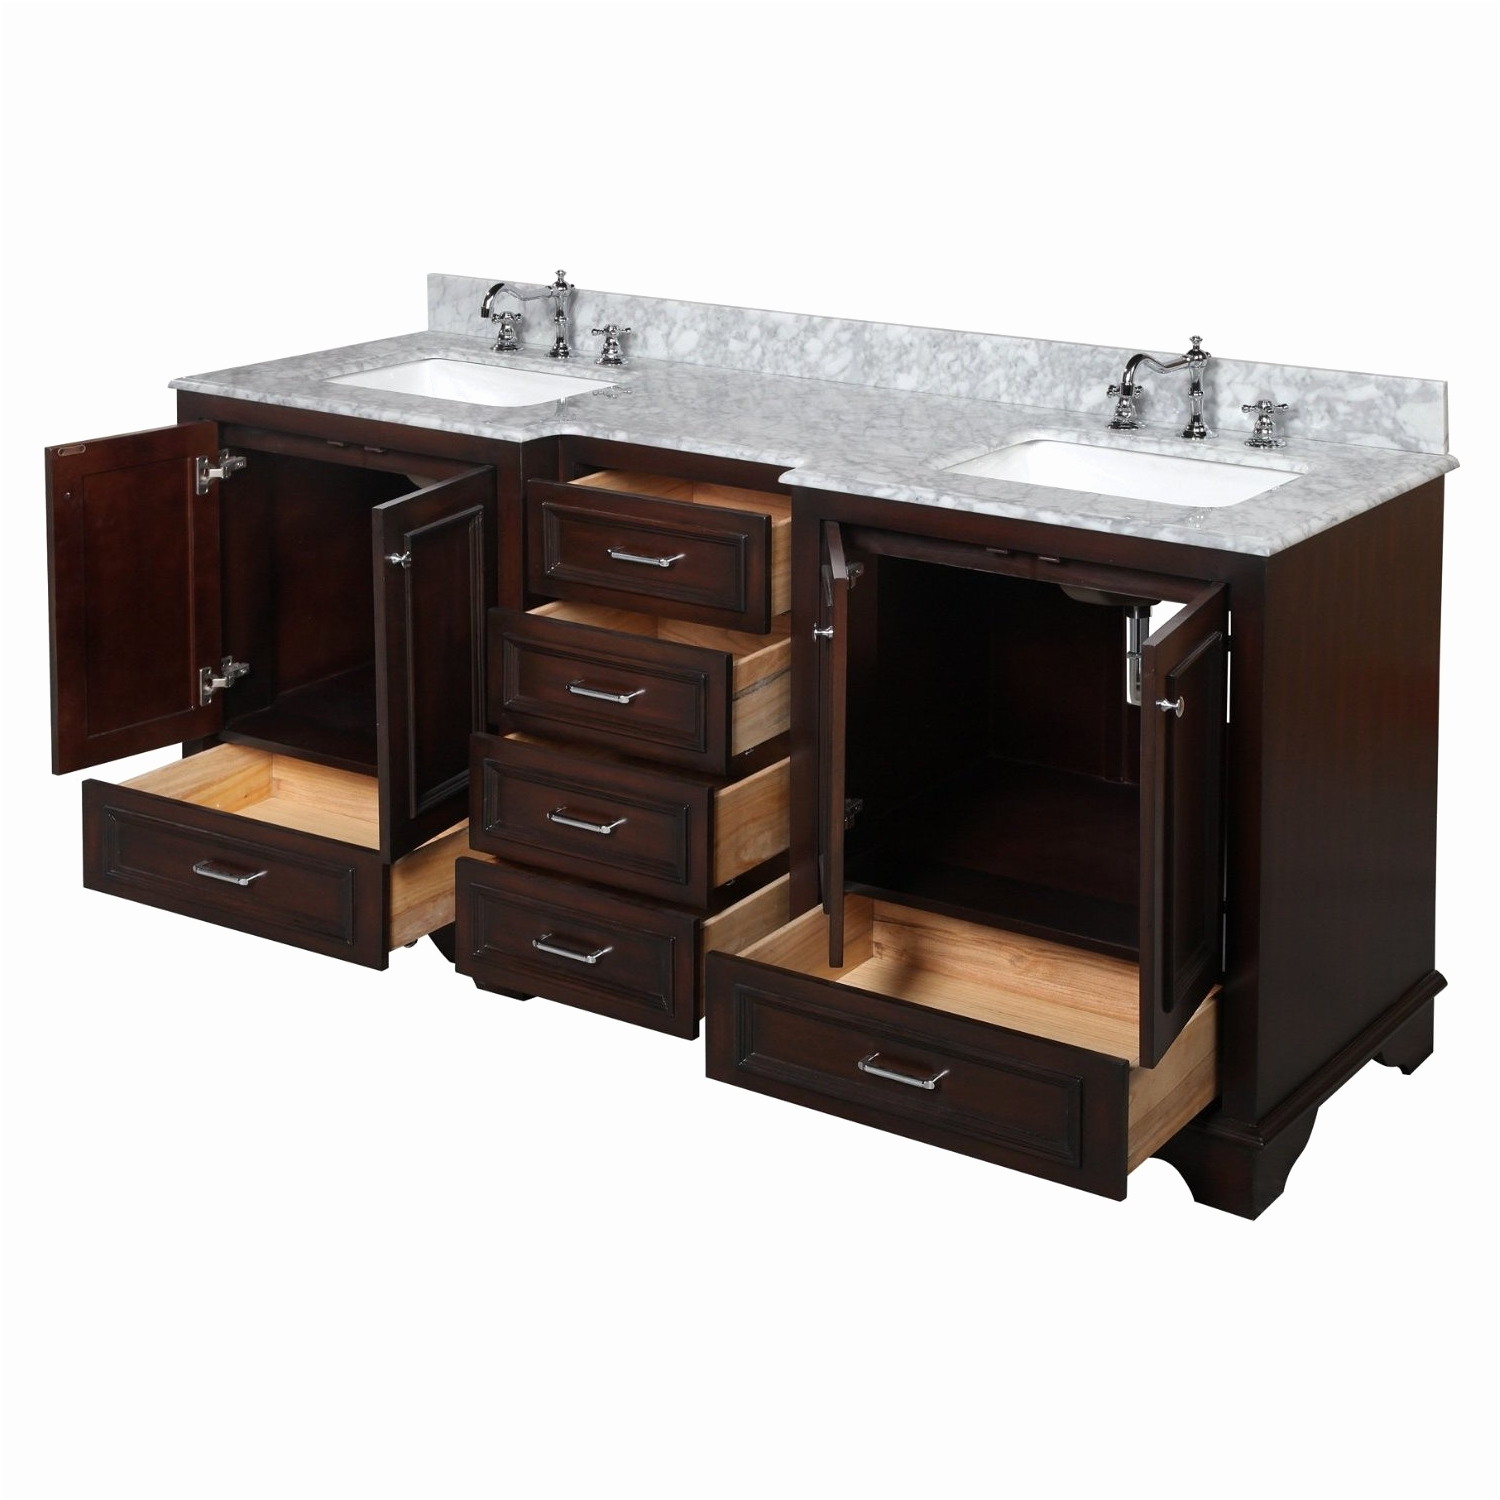 Vanity Home Depot for Bathroom Cabinets Design Ideas: Vanity Home Depot | Home Depot Vanities With Granite Tops | Double Vanity Home Depot